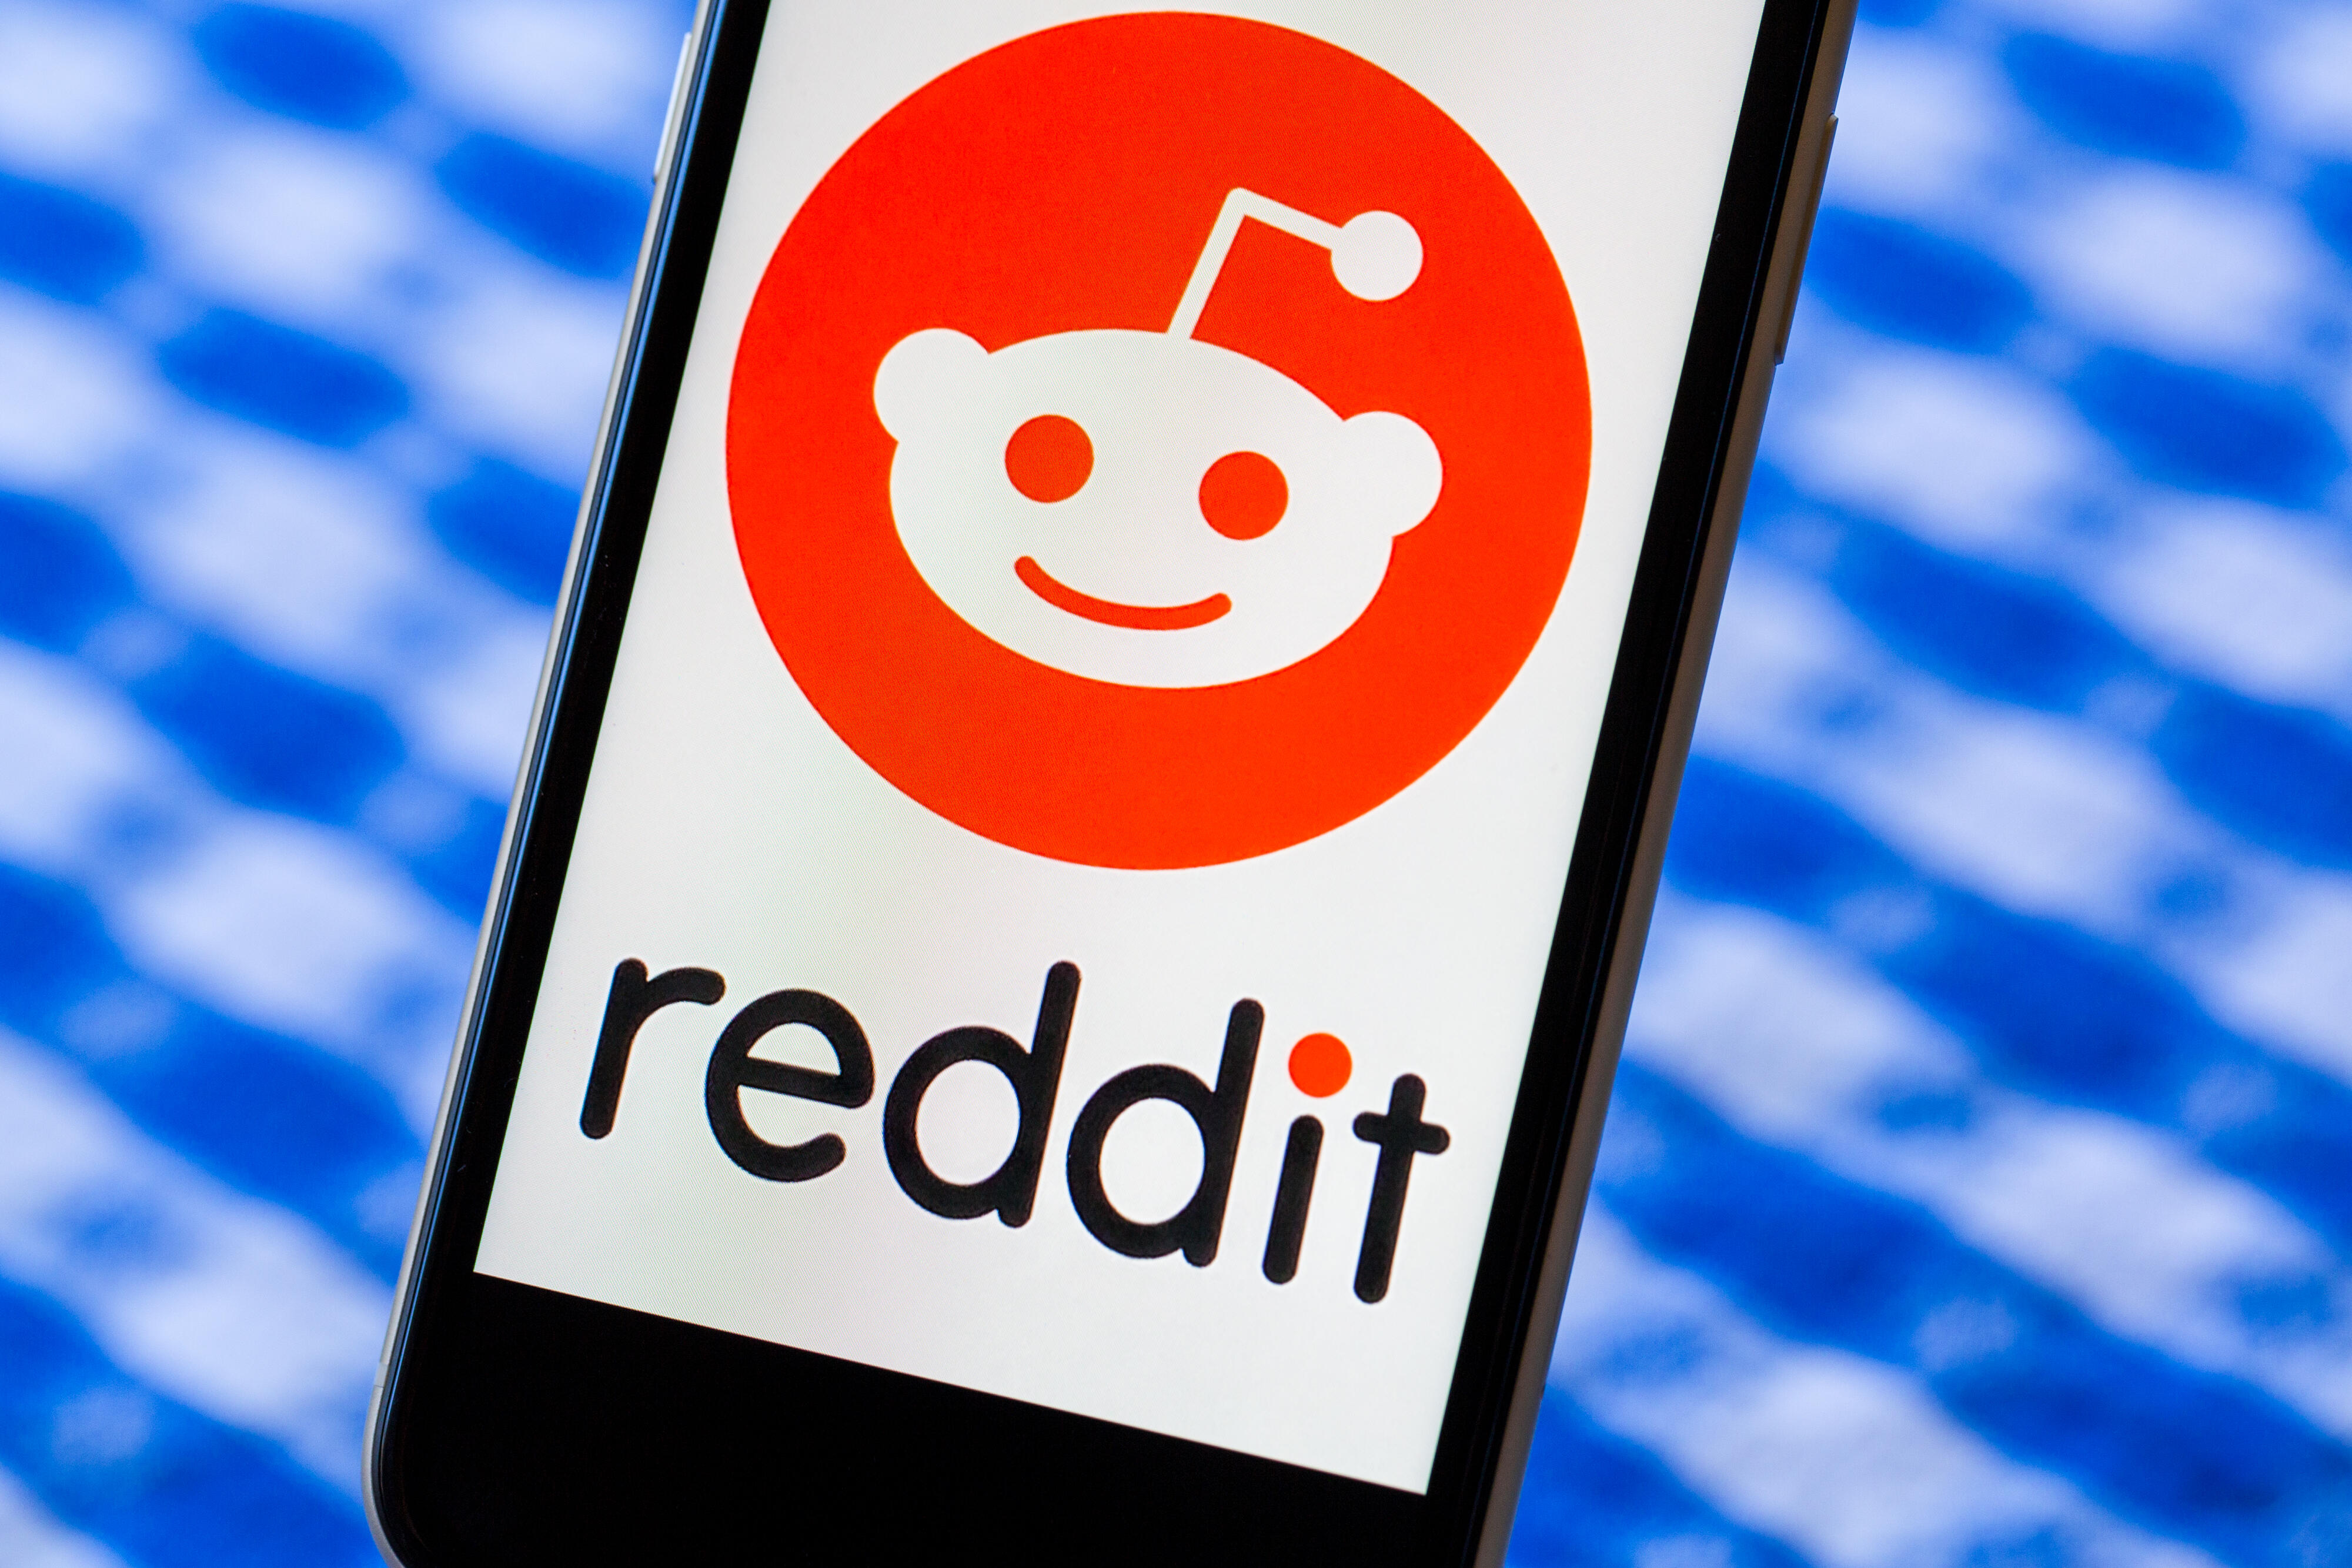 Reddit took action against COVID misinformation on its site